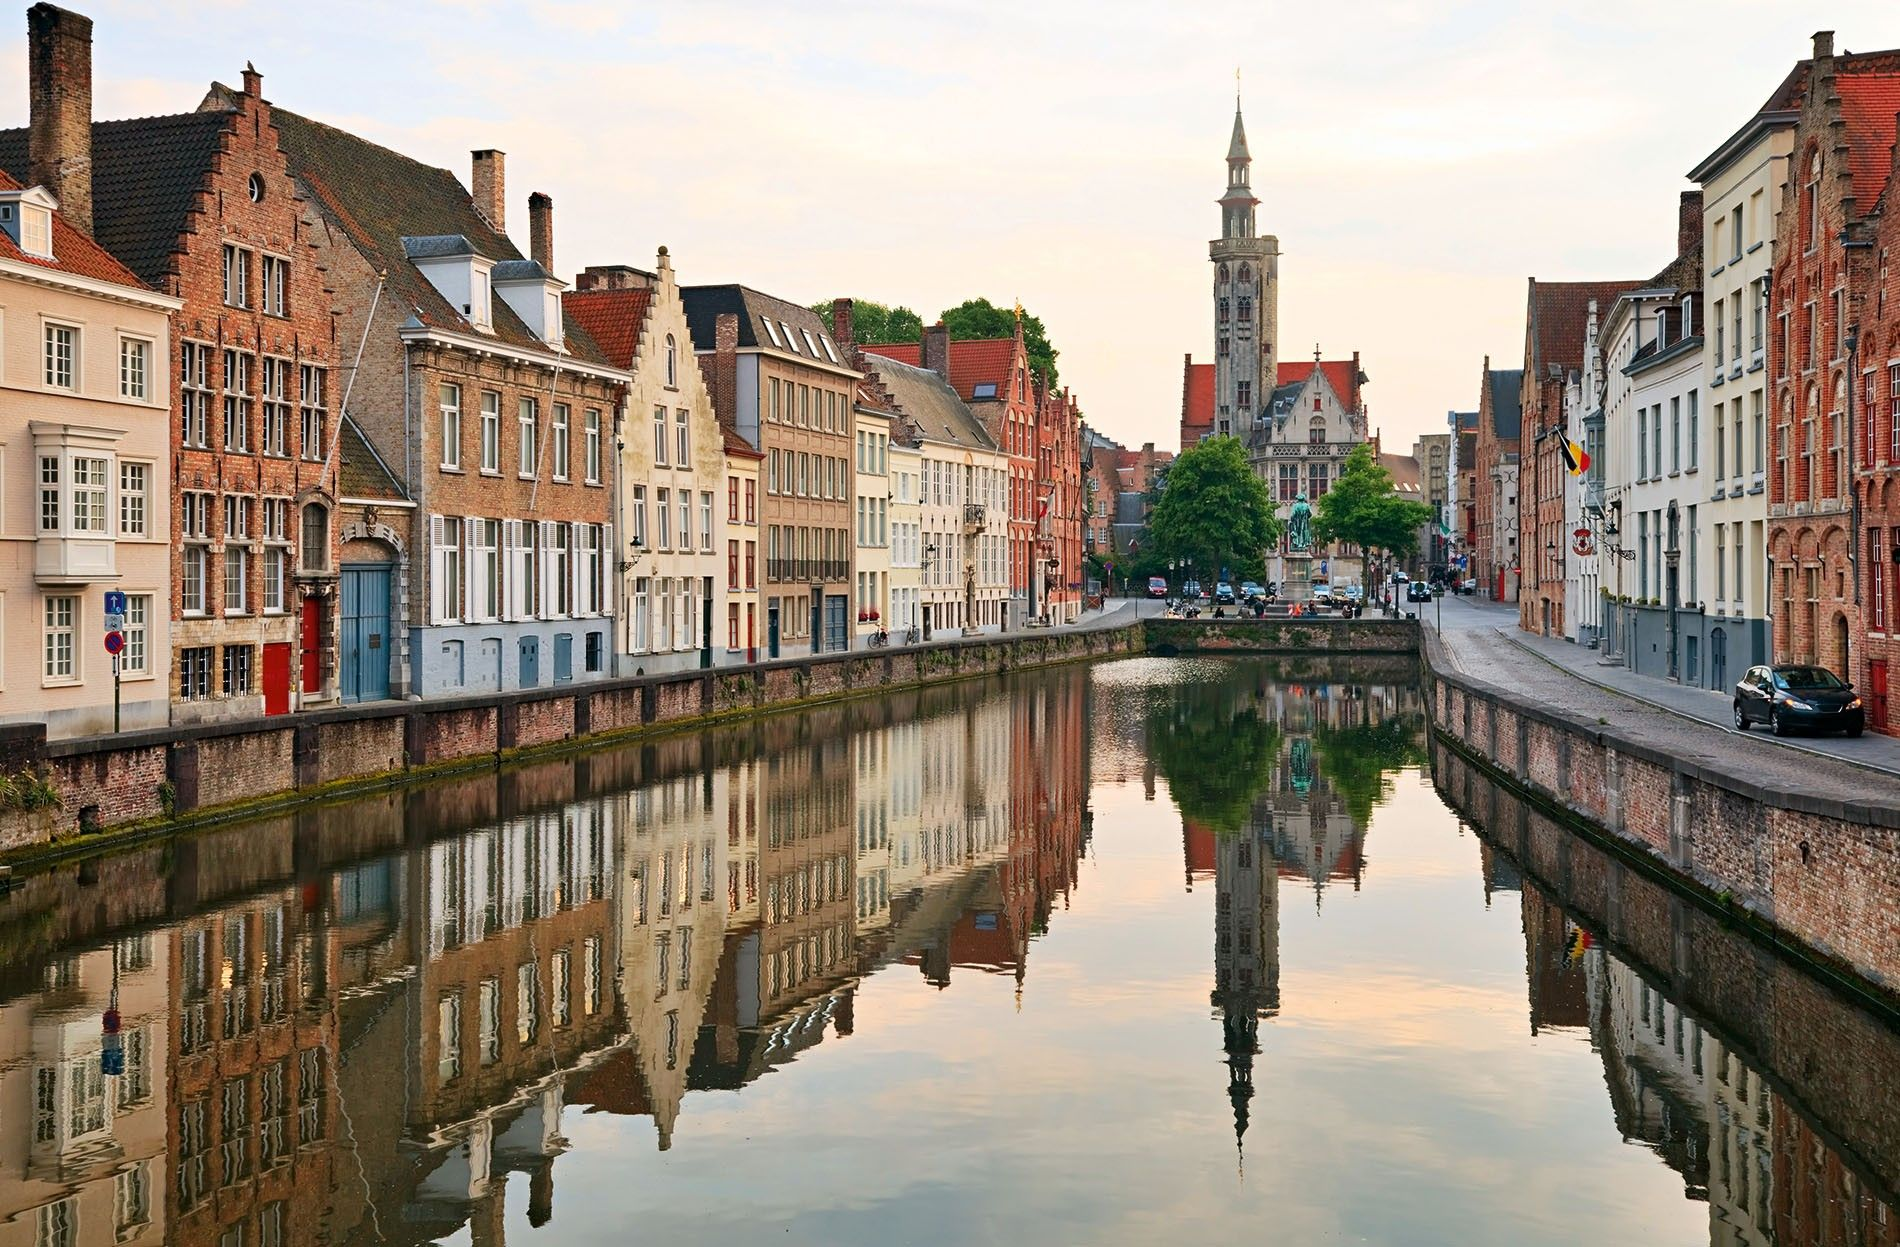 If you're looking for a dose of high-brow culture, make a beeline for the 800-year-old Old St John's Hospital and the Groeninge Museum, for works by the Flemish Primitives, including Jan van Eyck and Hans Memling, who established Bruges as a centre of art in the 15th century